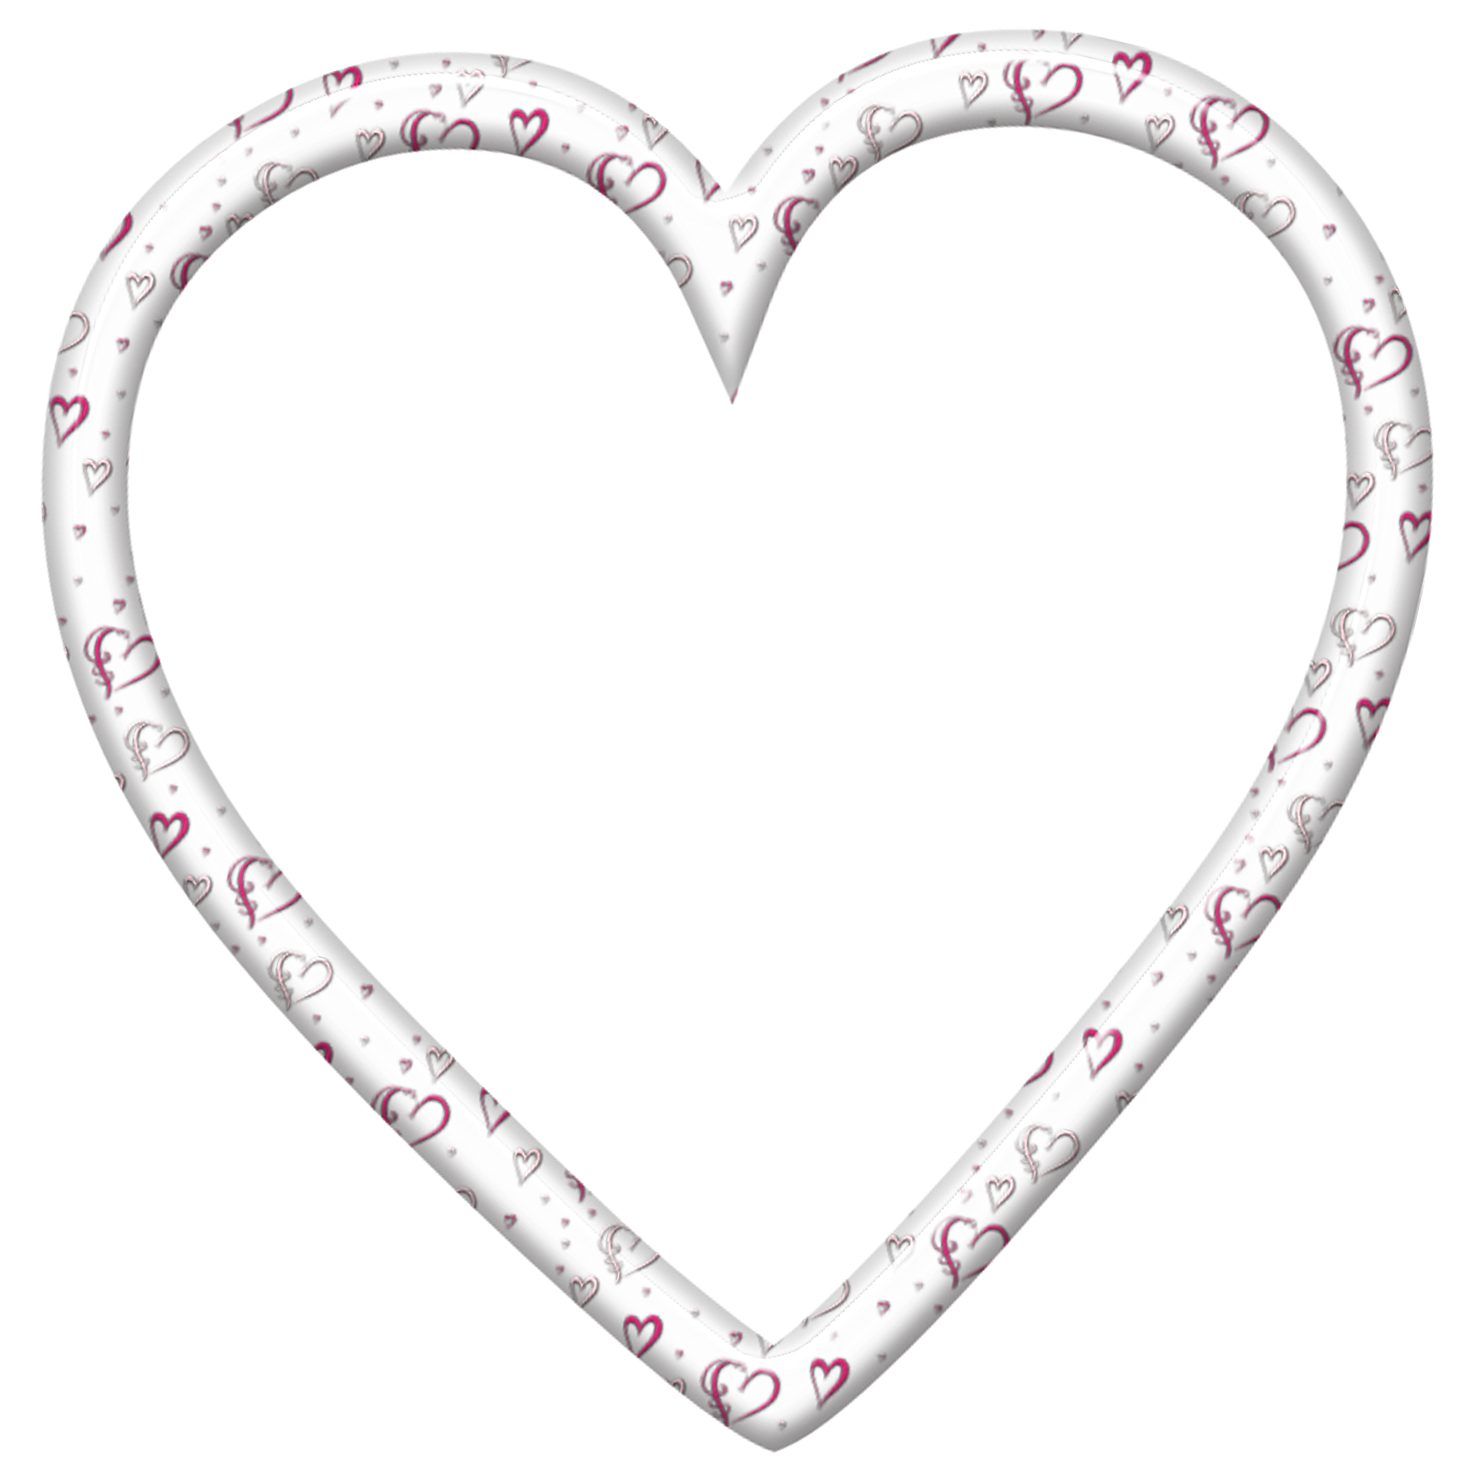 1463x1479 Cute Transparent Heart Png Pictureu200b Gallery Yopriceville